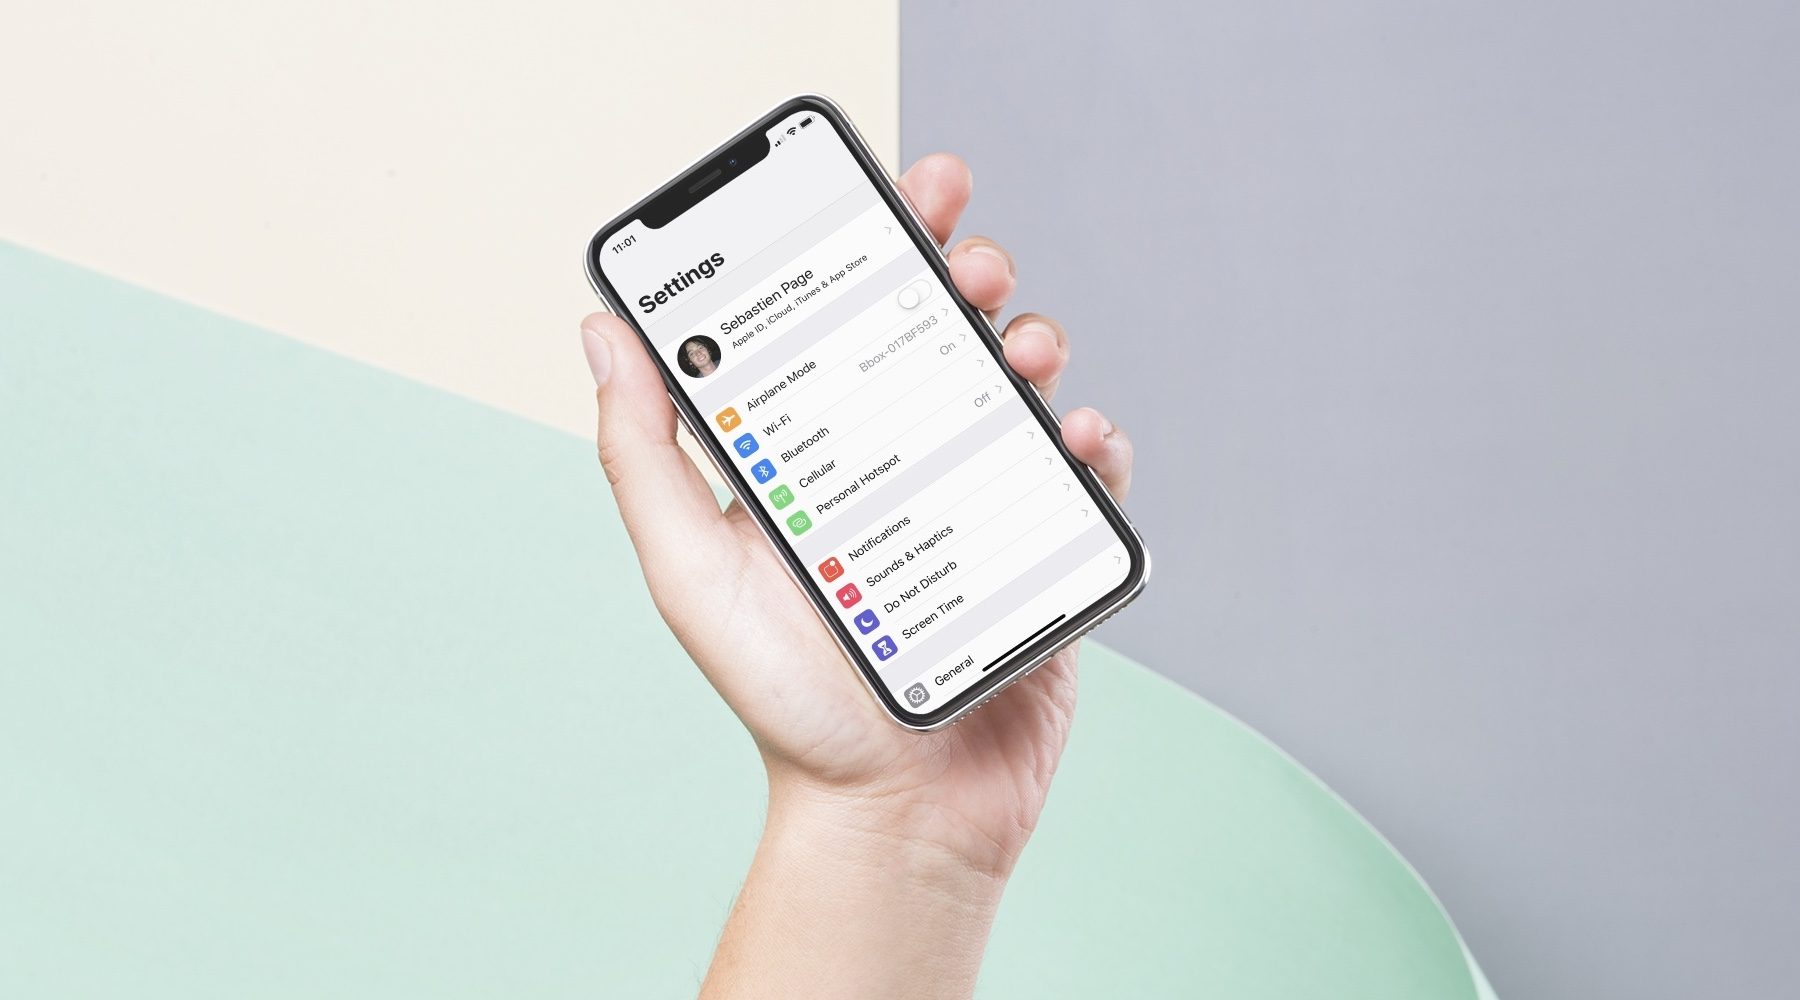 setting up a new iPhone - iPhone X settings